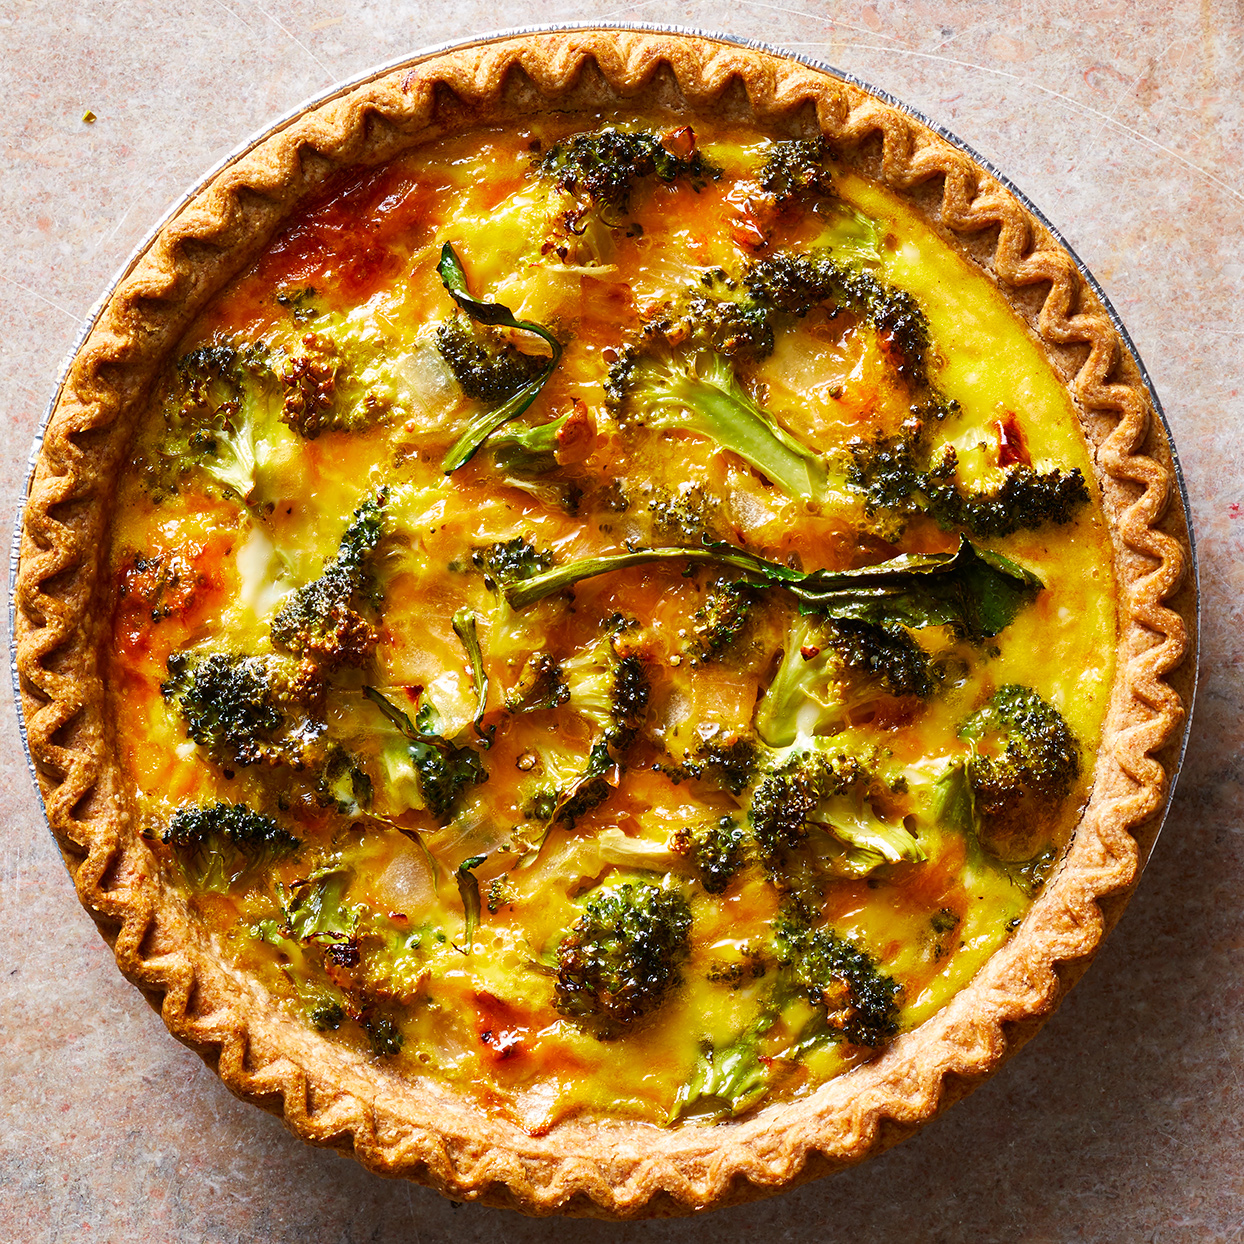 Make-Ahead Broccoli-Cheddar Quiche Trusted Brands